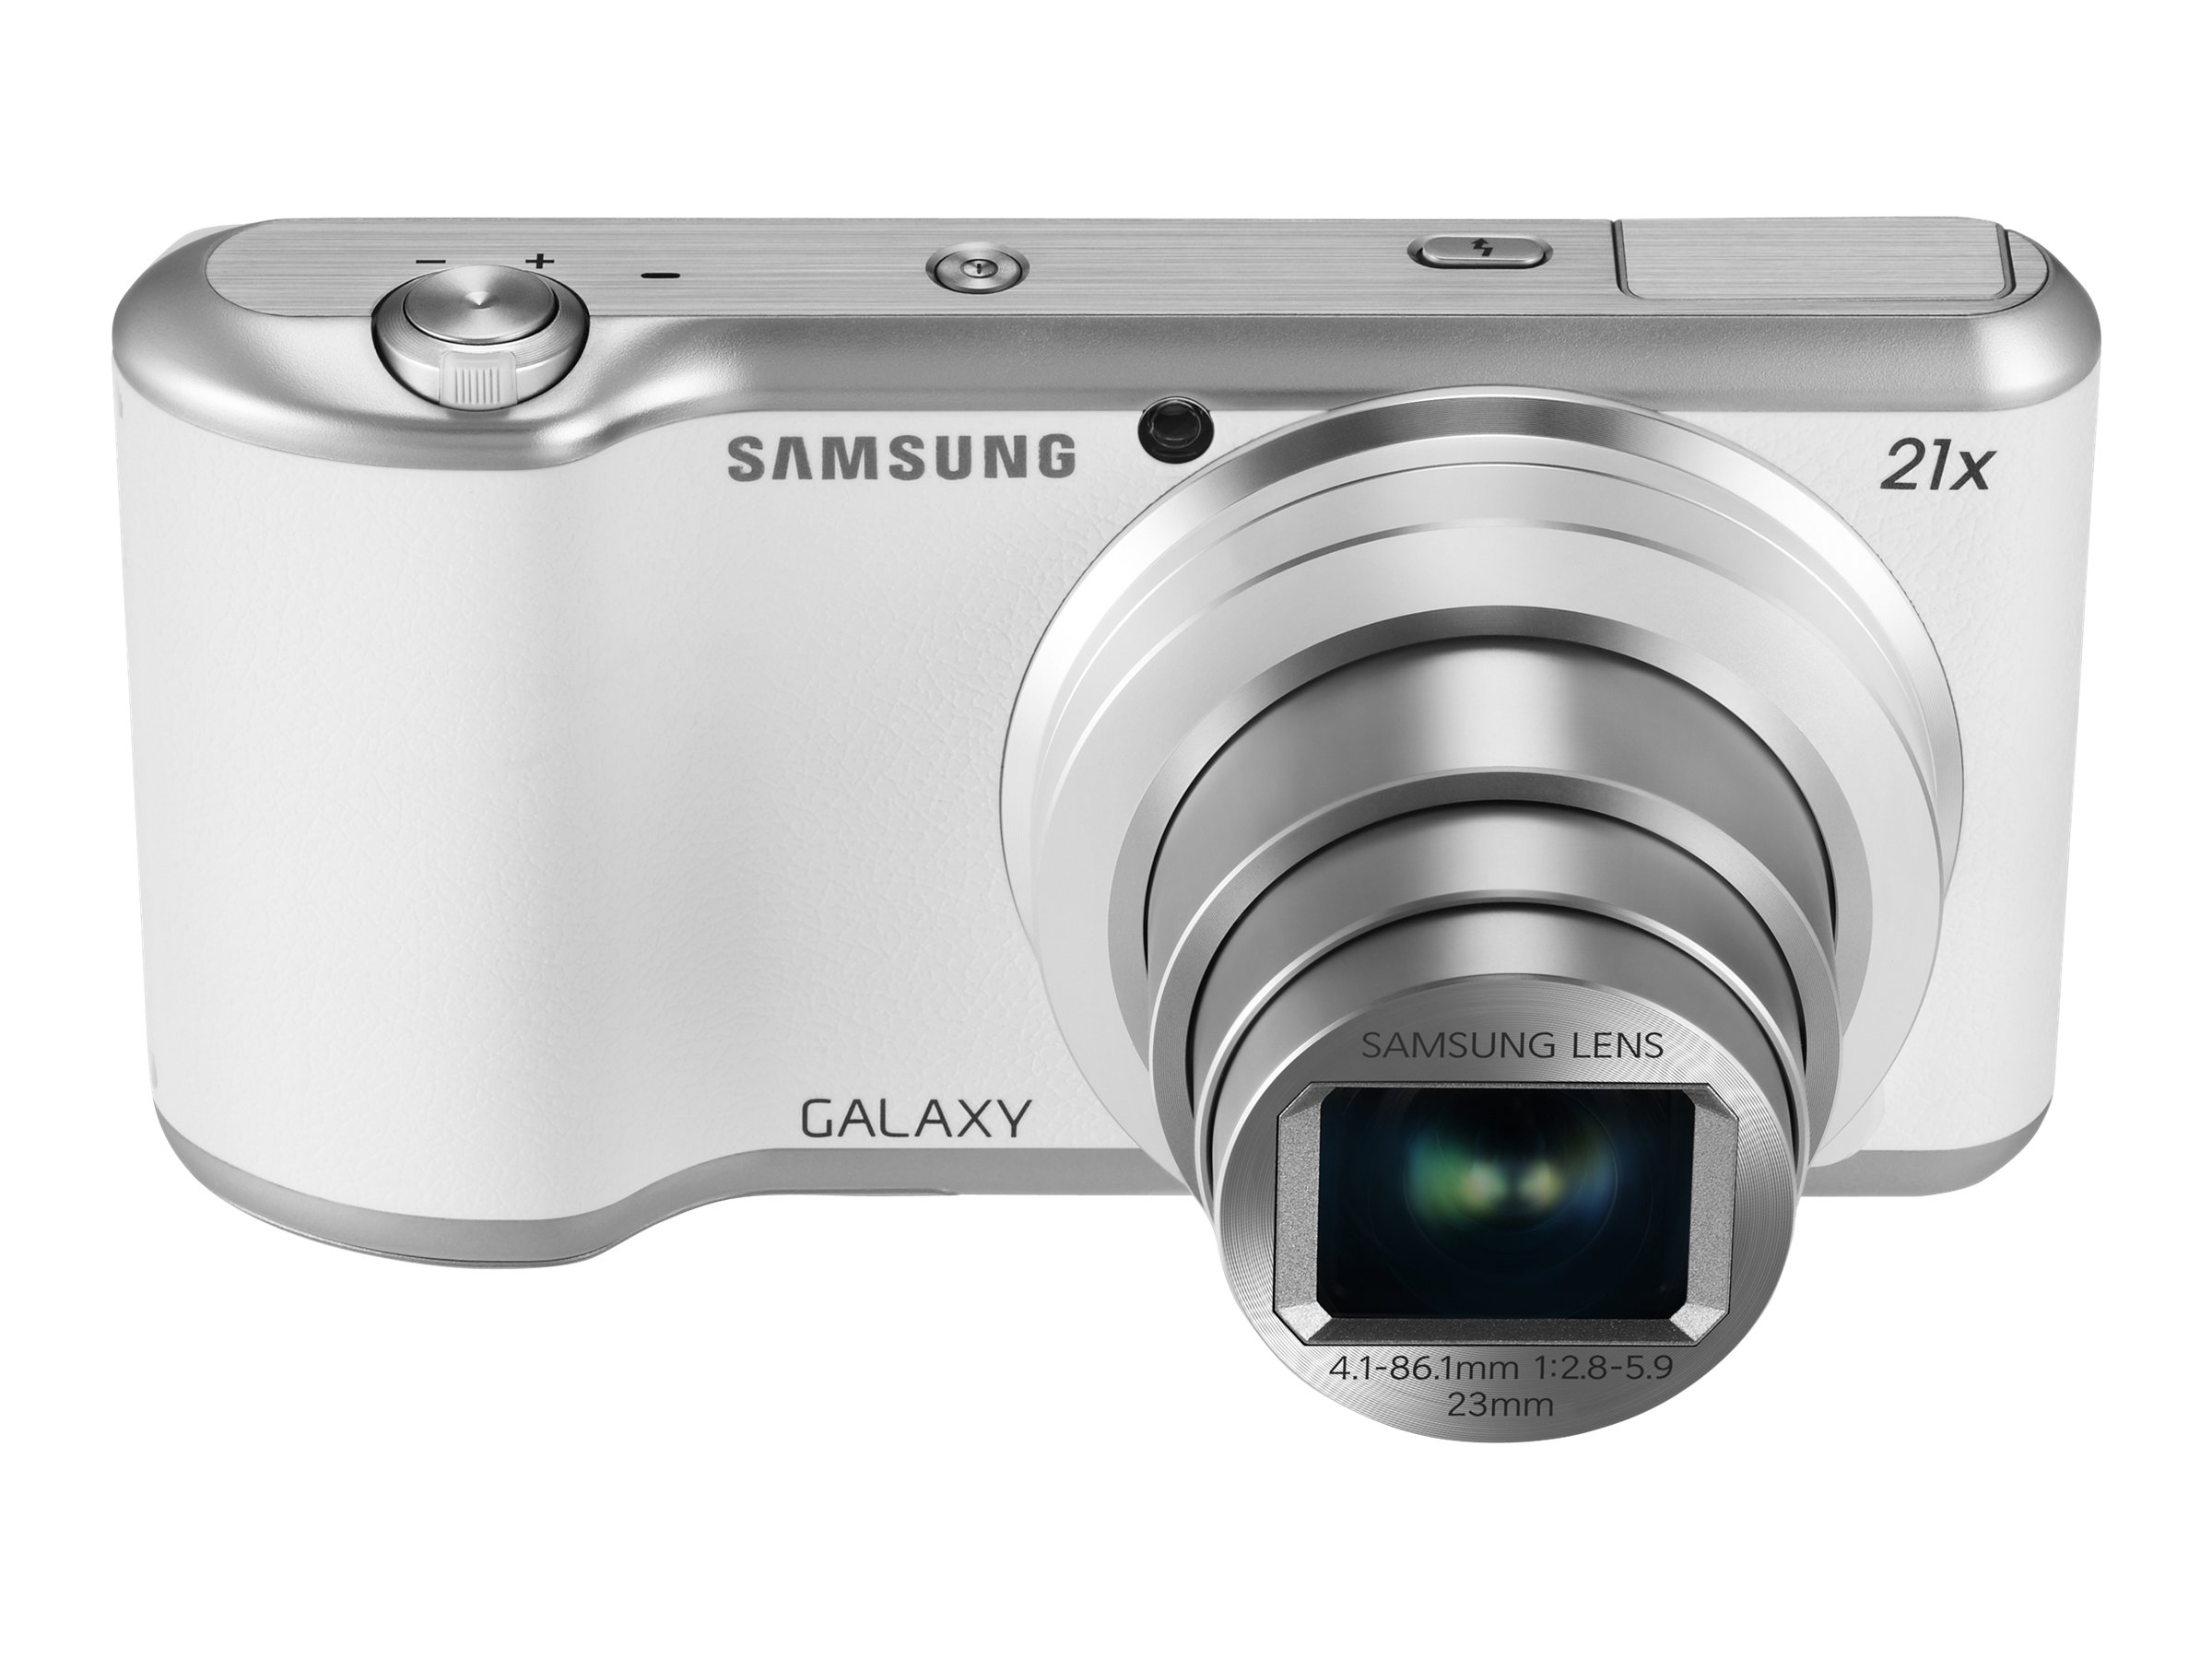 Samsung GALAXY Camera 2 Wi-Fi, 16.3MP, 21x Zoom, White, EK-GC200ZWAXAR, 30942269, Cameras - Digital - Point & Shoot